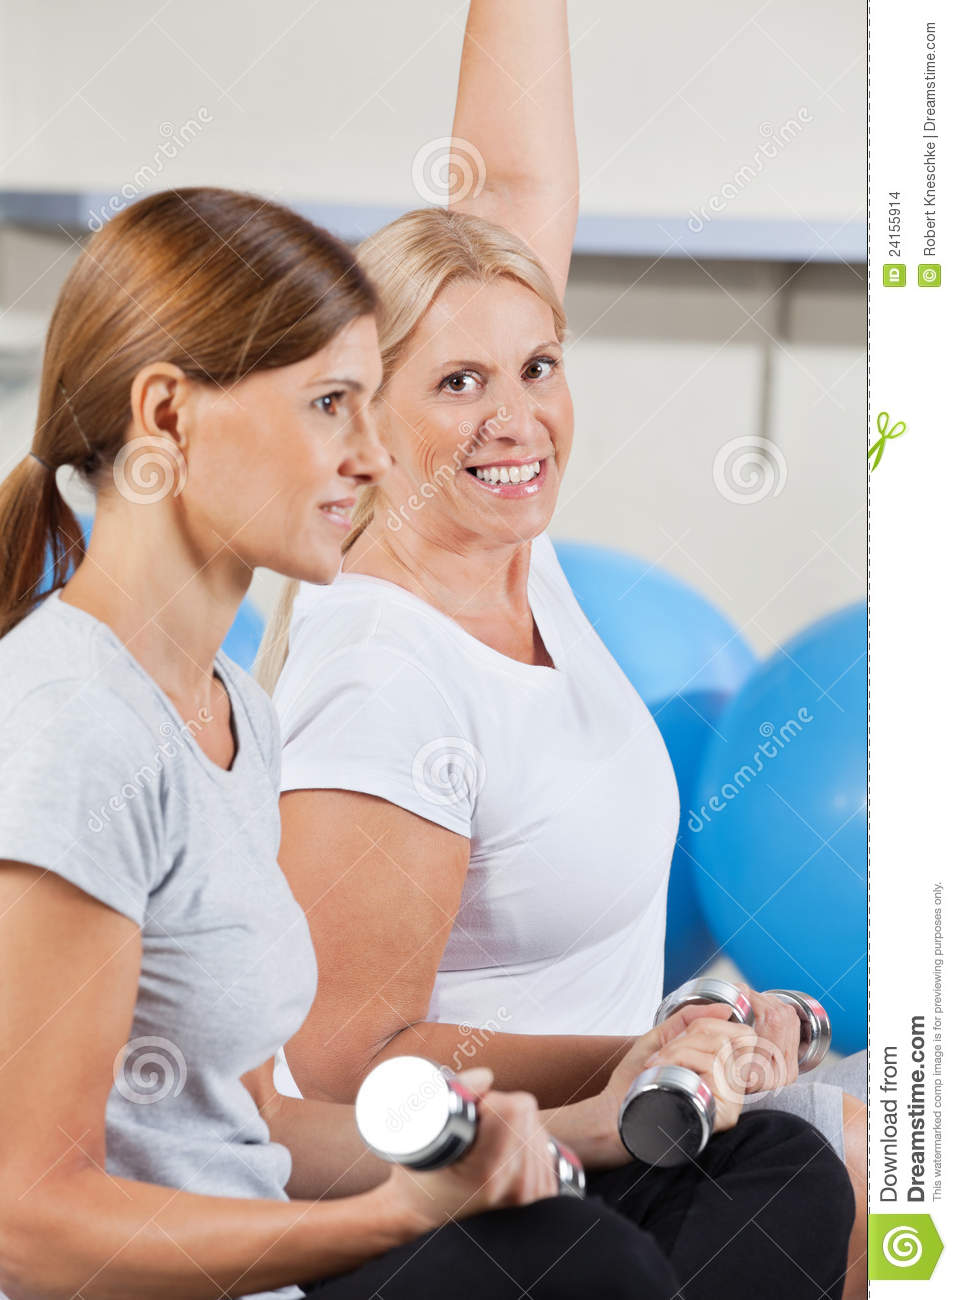 Women Working Out In Gym Stock Images - Image: 24155914